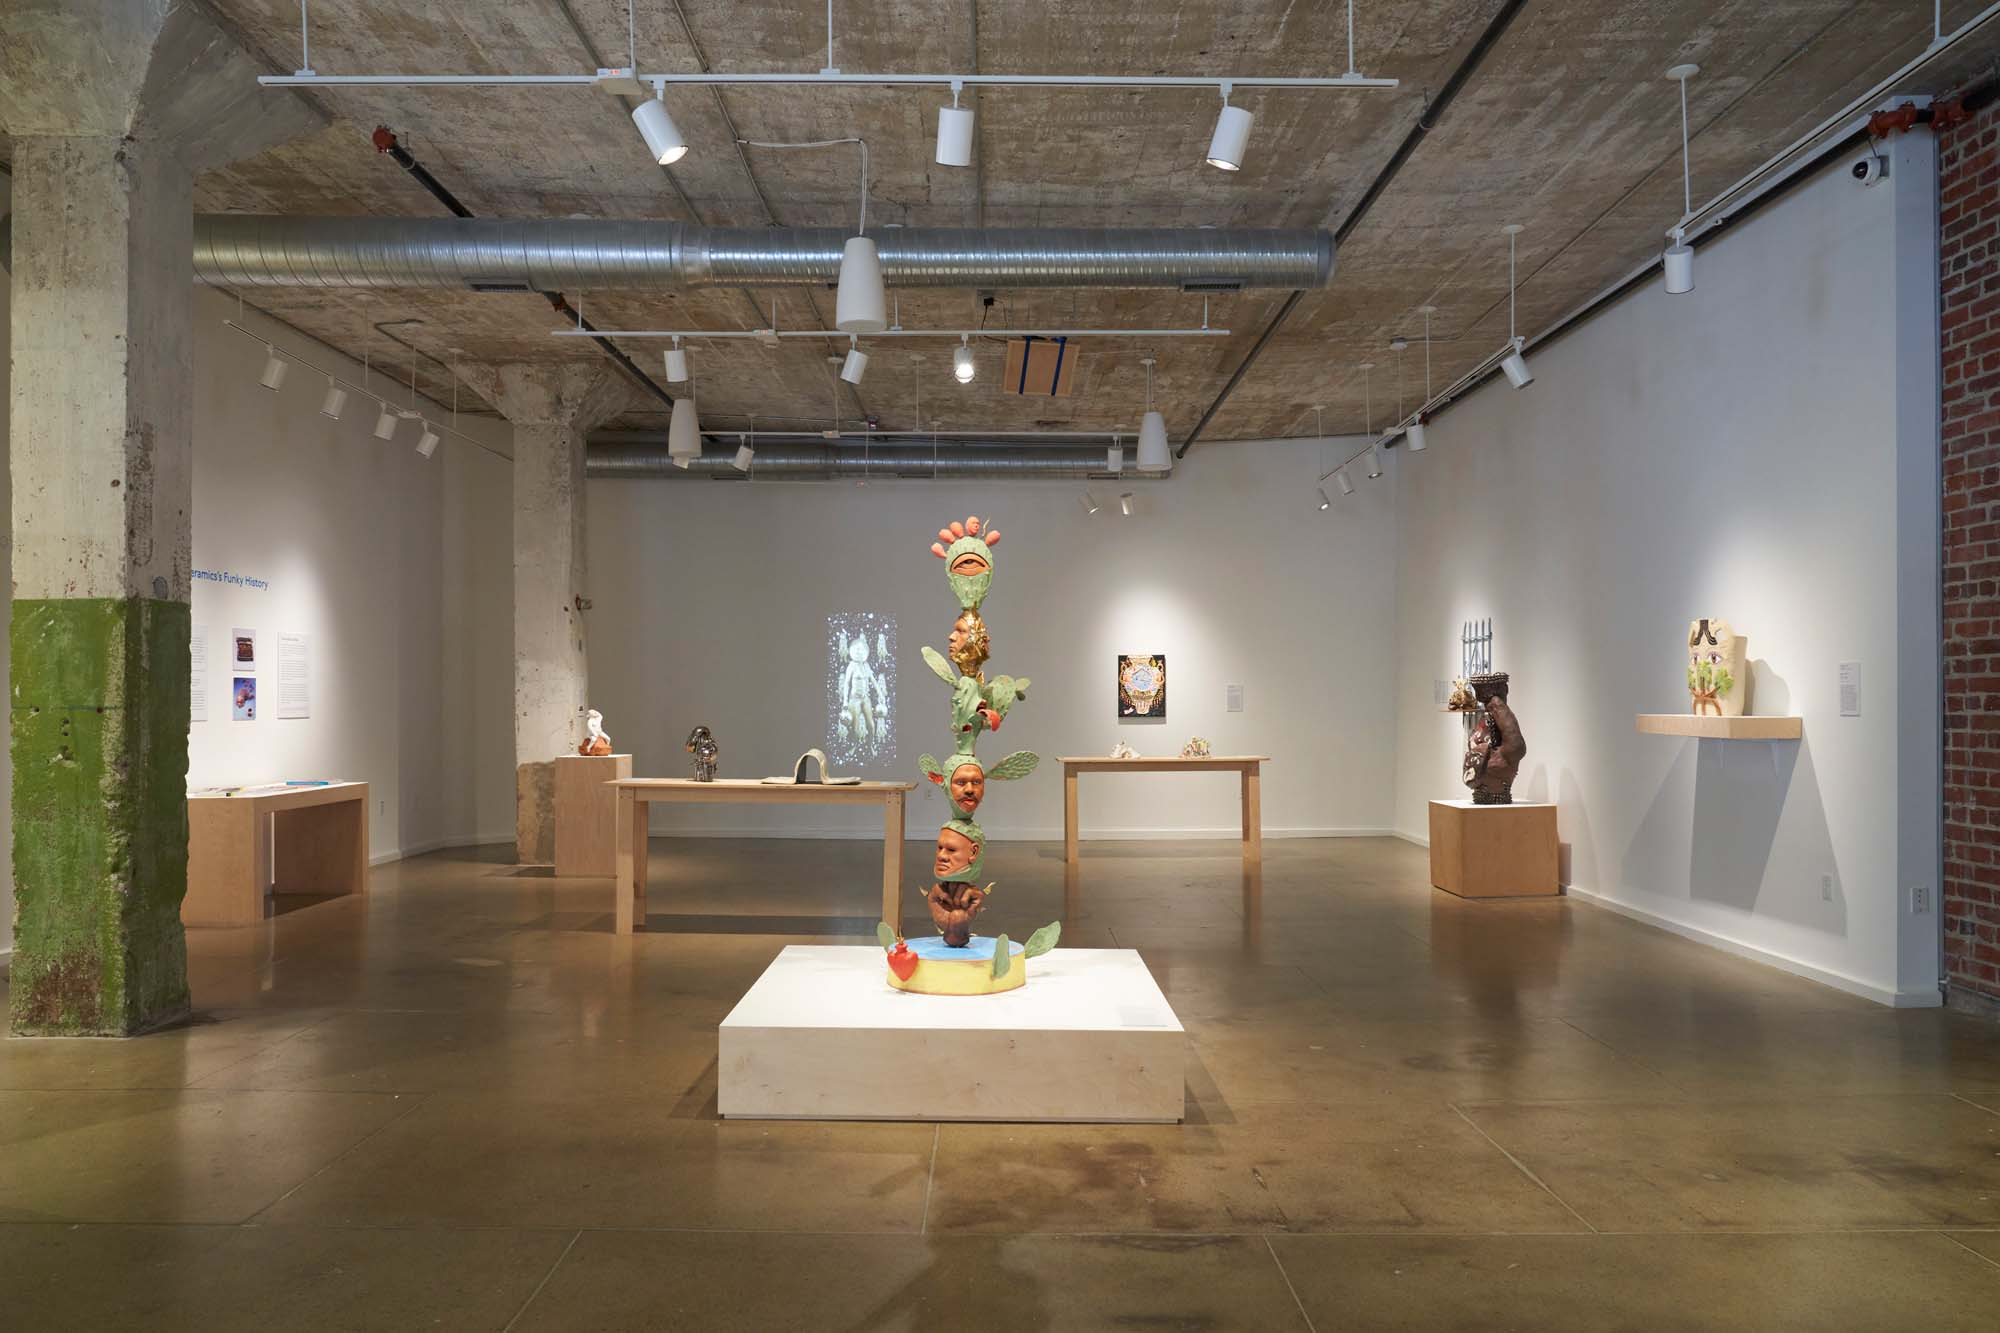 Image shows exhibition in gallery space with white walls. Ceramic sculptures are installed on pedestals, tables, and hanging from walls.